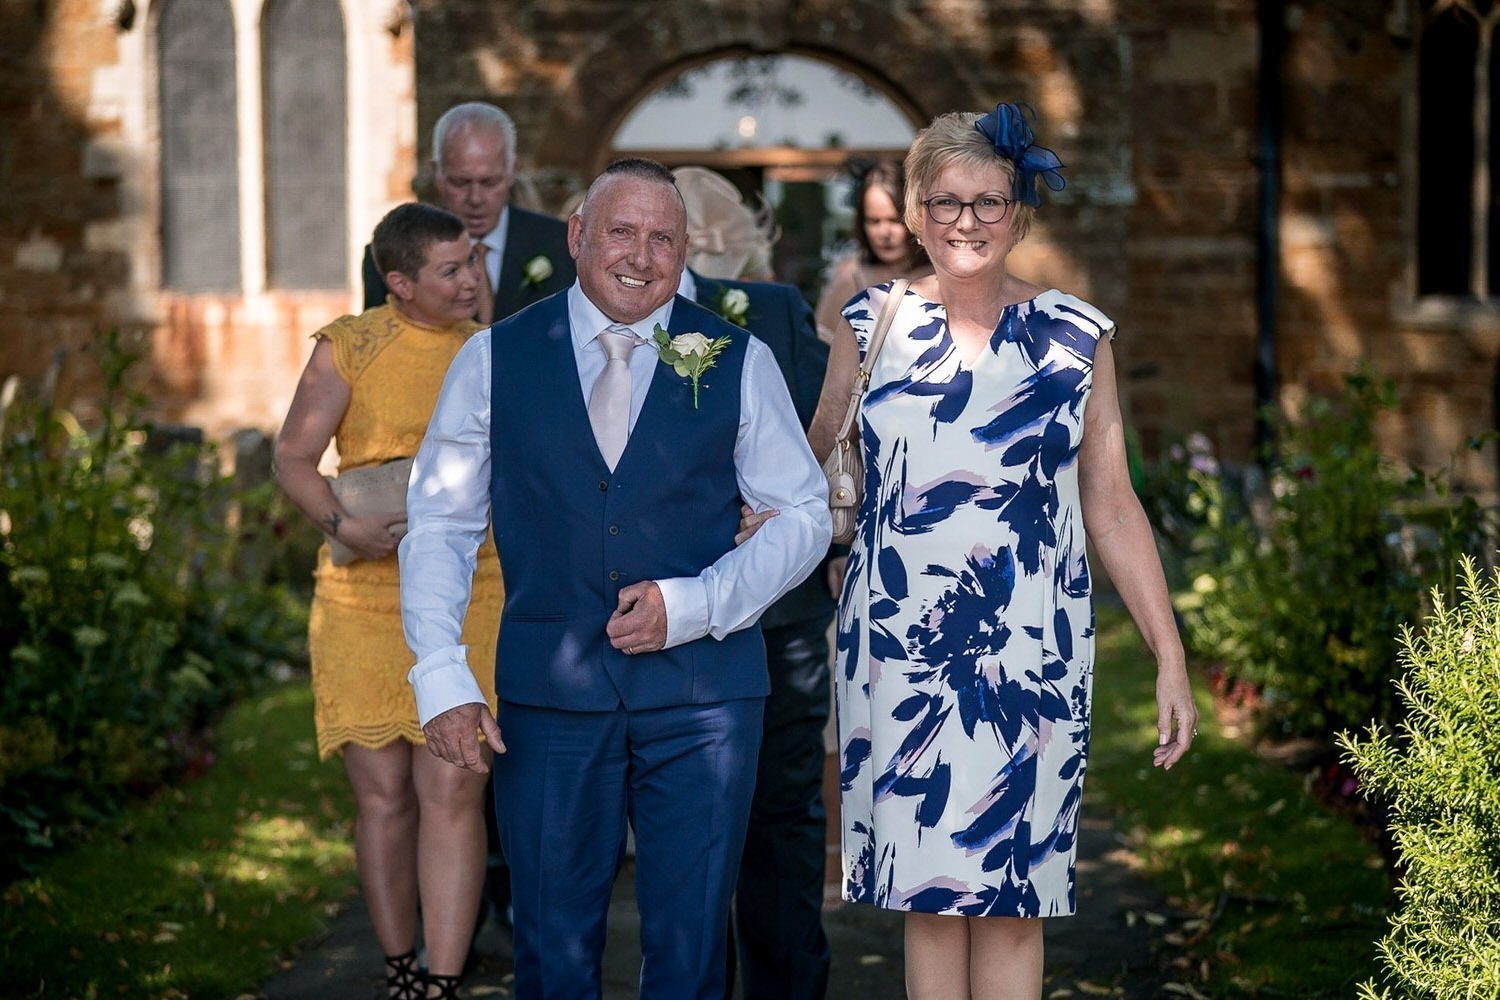 Great Bowden Parish Church Lockwood Weddings Photography guest photos as they leave the church father of the bride